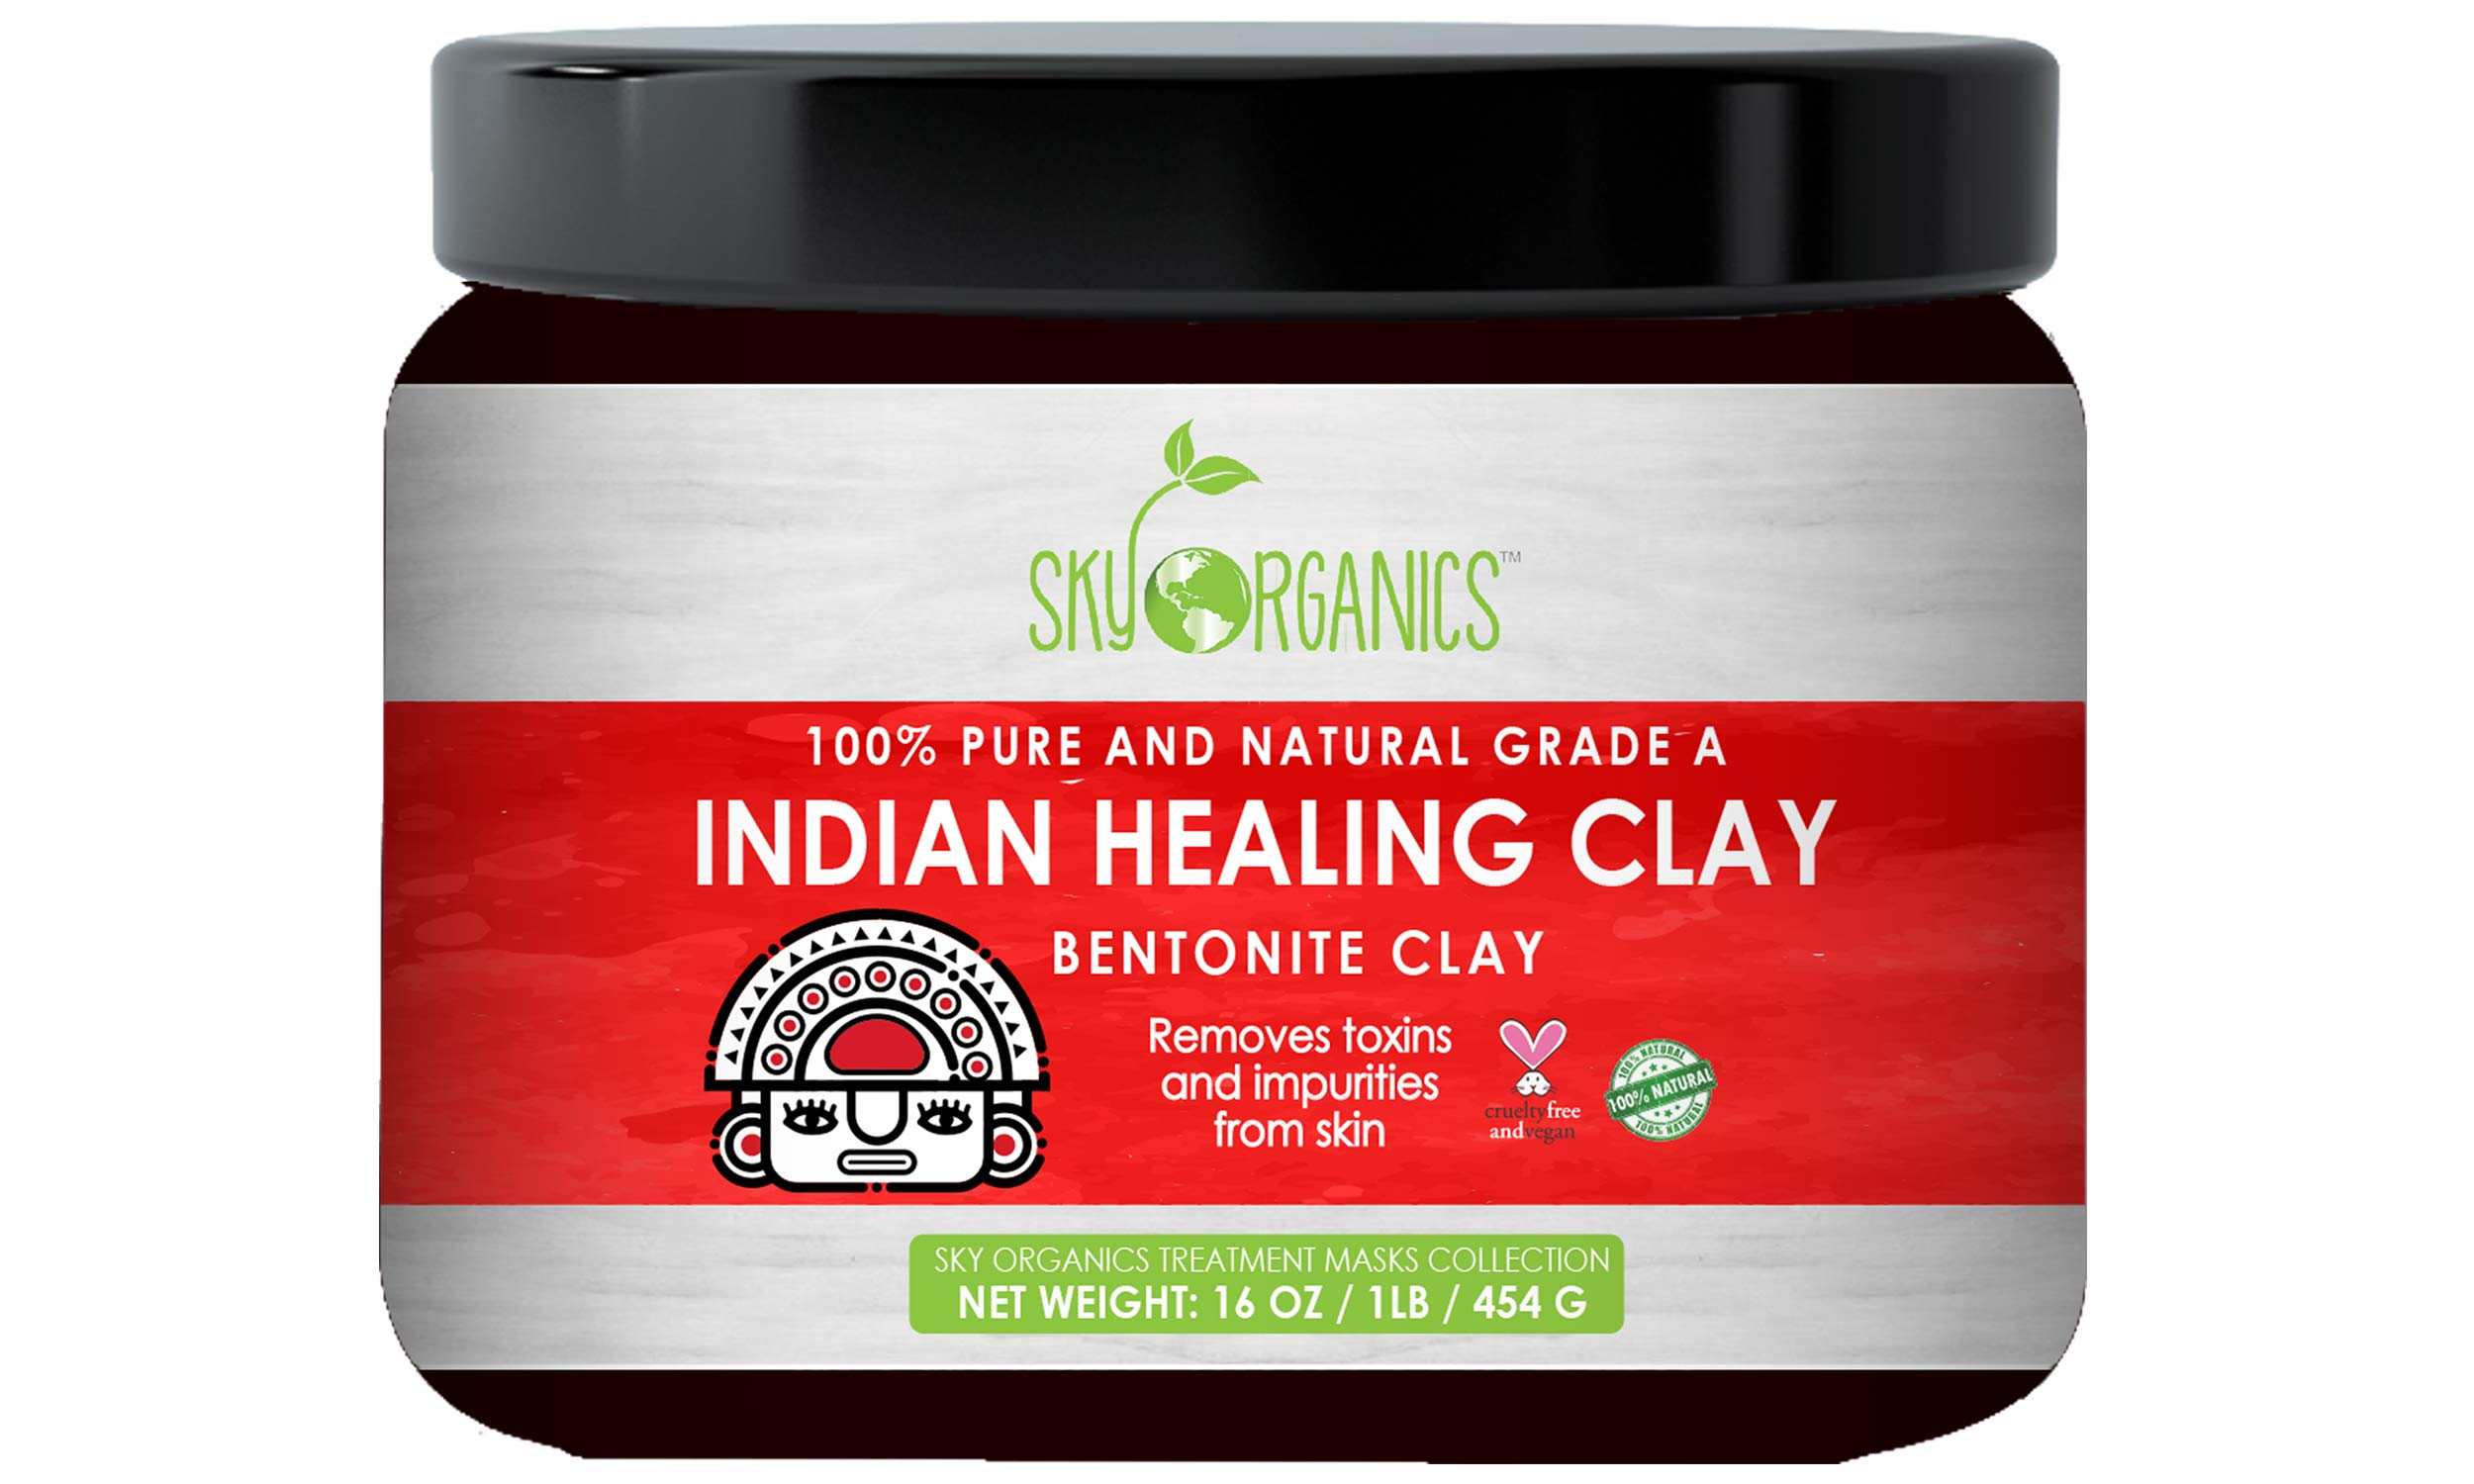 Sky Organics - Indian Healing Clay By Sky Organics 16oz –100% Pure & Natural Bentonite Clay-Therapeutic Grade - Face Skin Care, Deep Skin Pore Cleansing, Detoxifying- Helps with Acne & Rejuvenating Skin- Made in USA